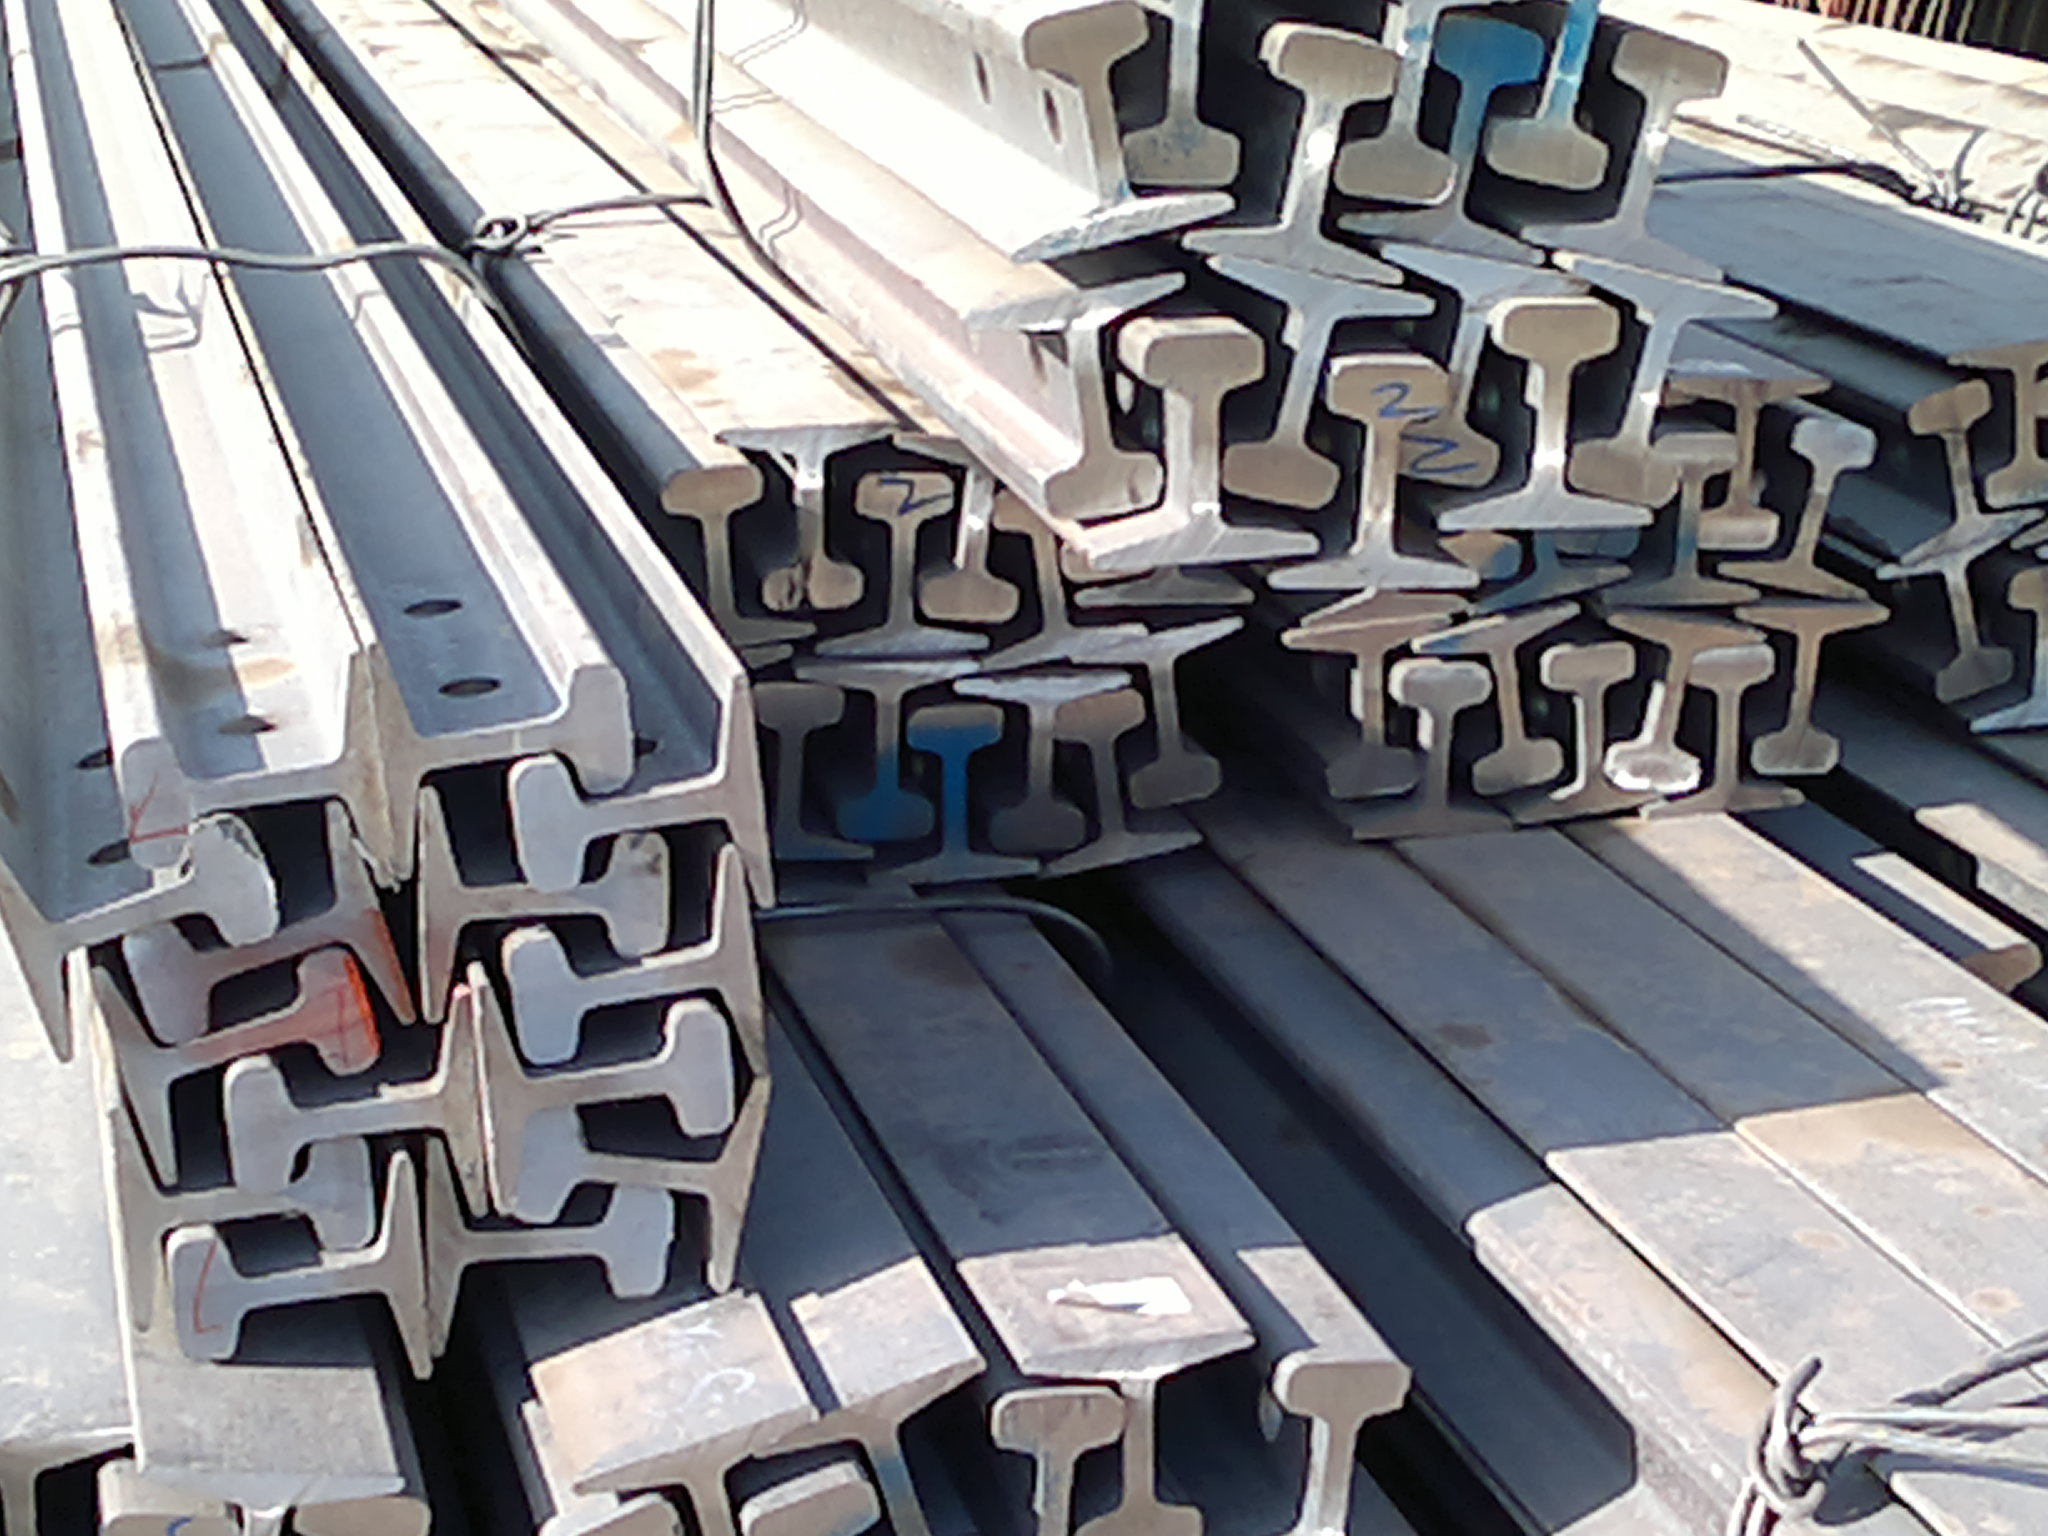 HR Steel Rail Light Made in China with High Quality and Competitive Prices